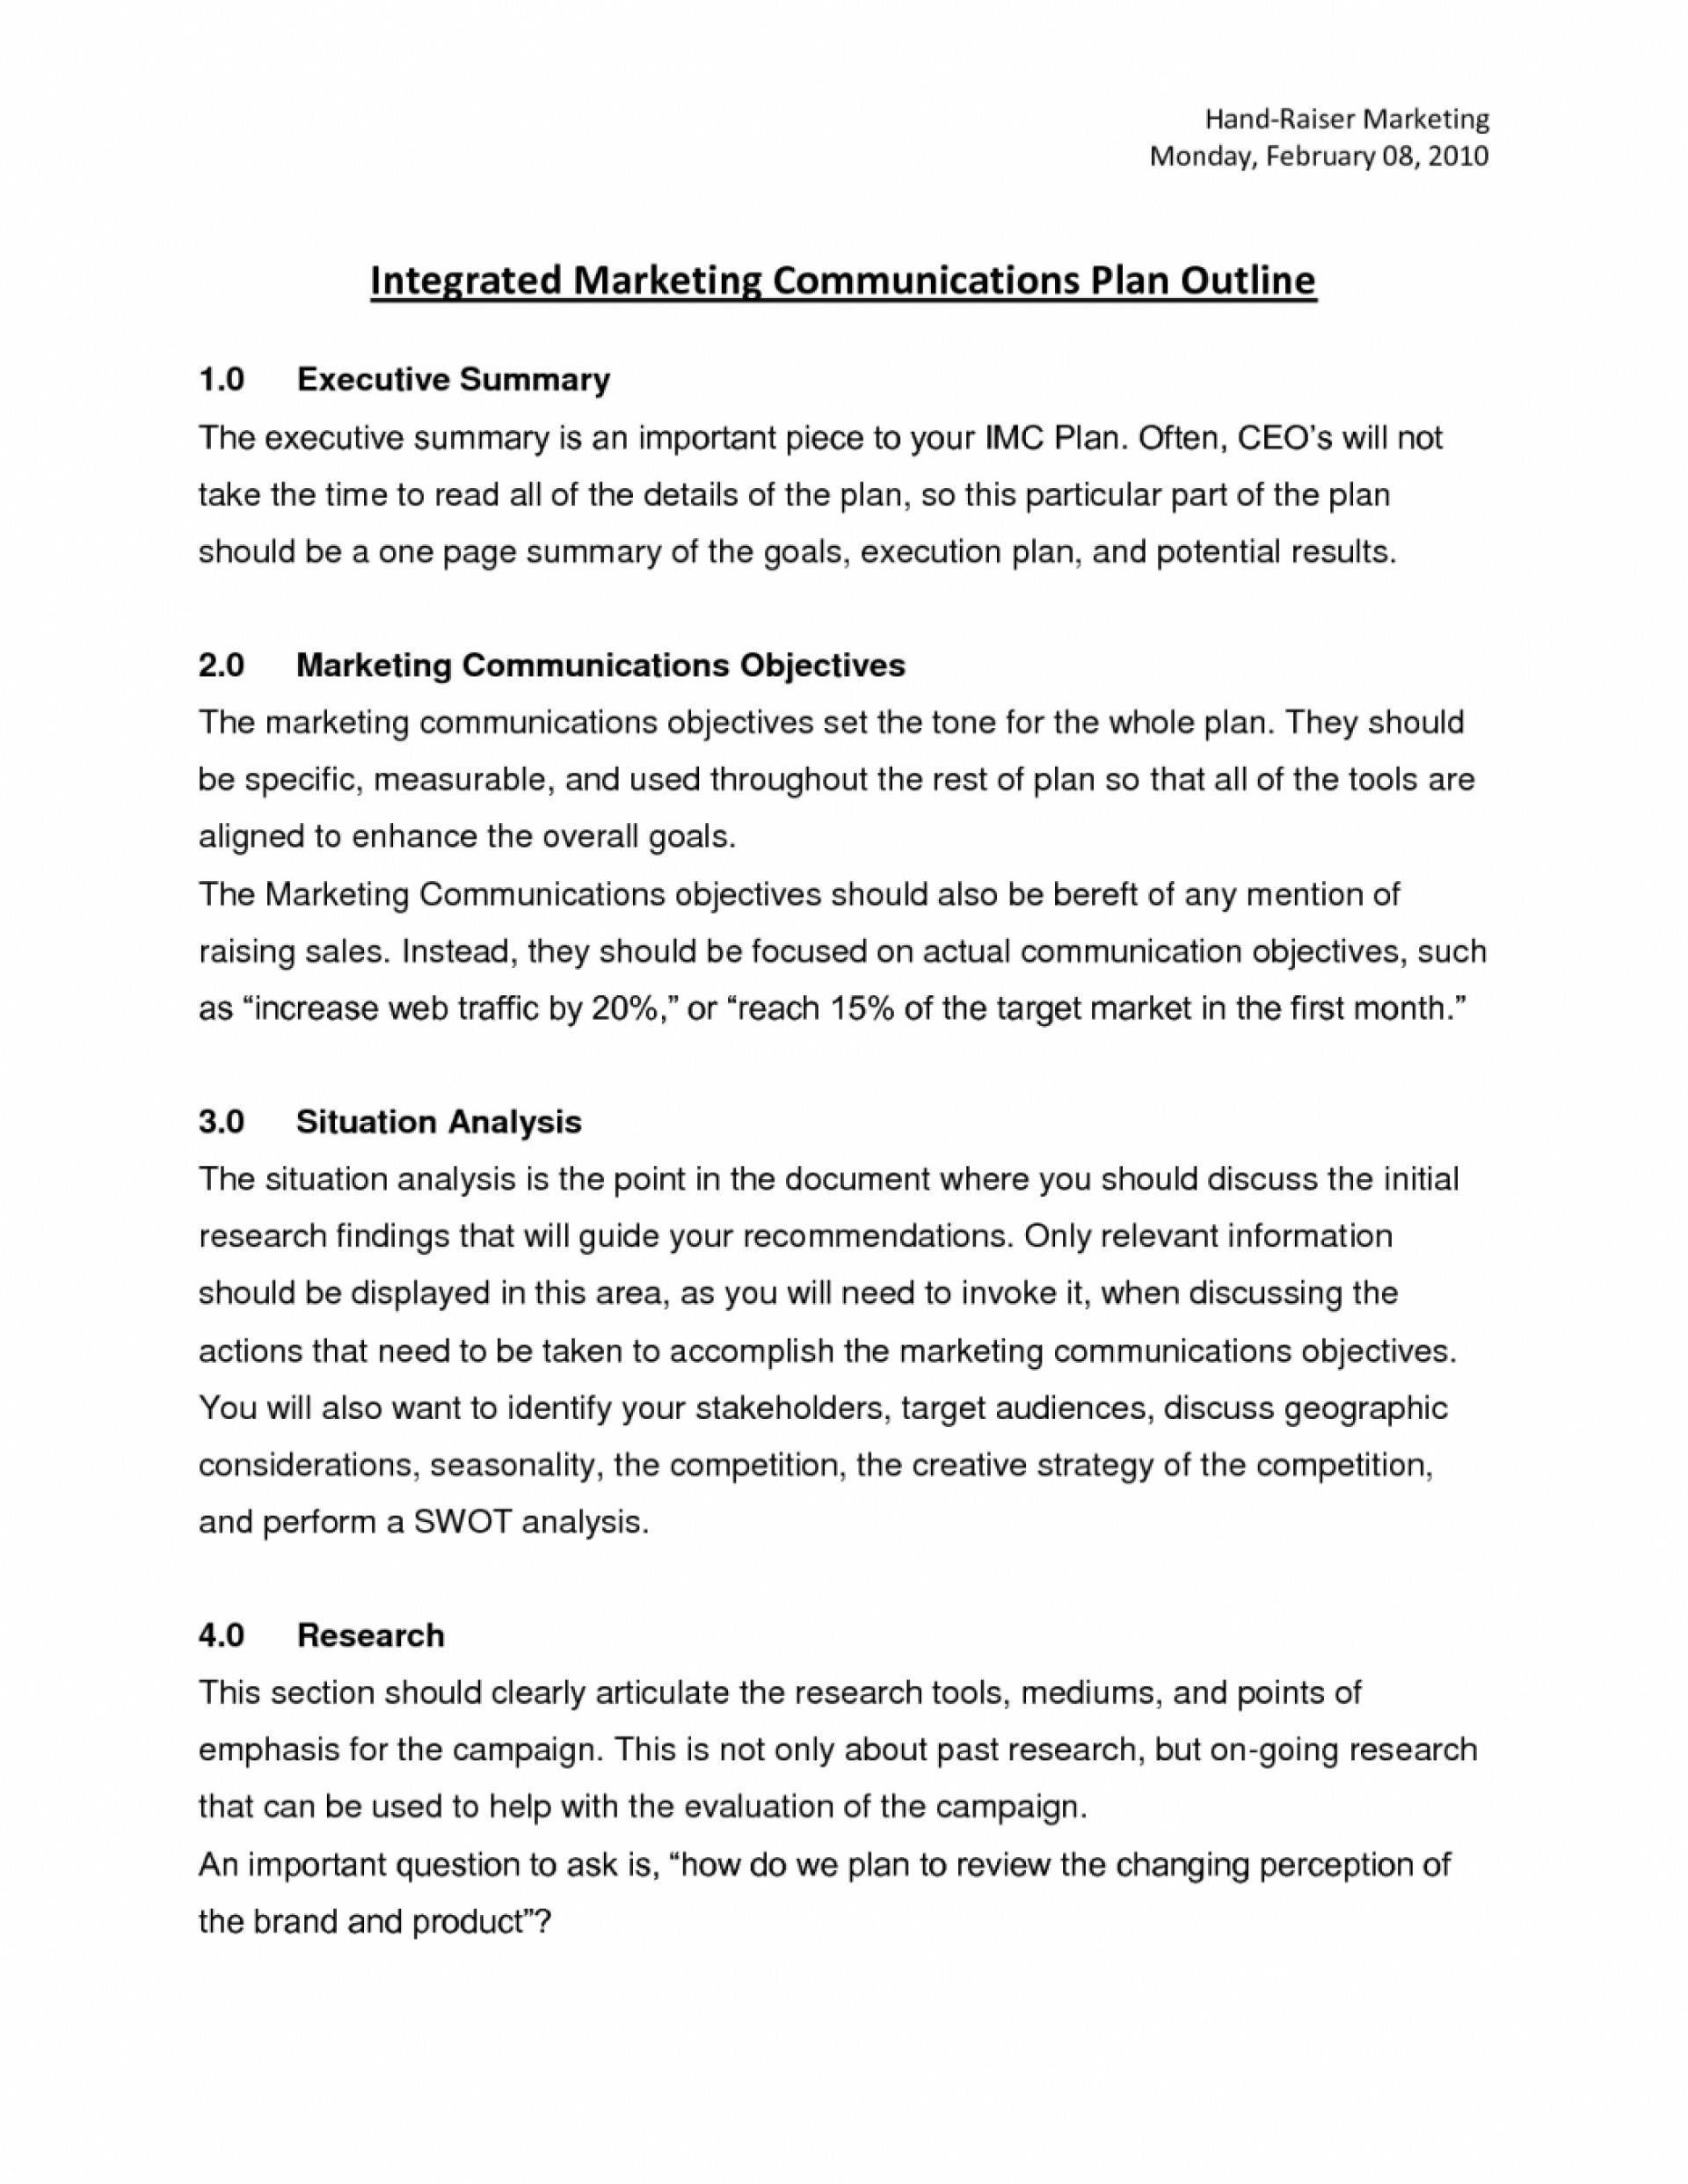 Student papers on marketing